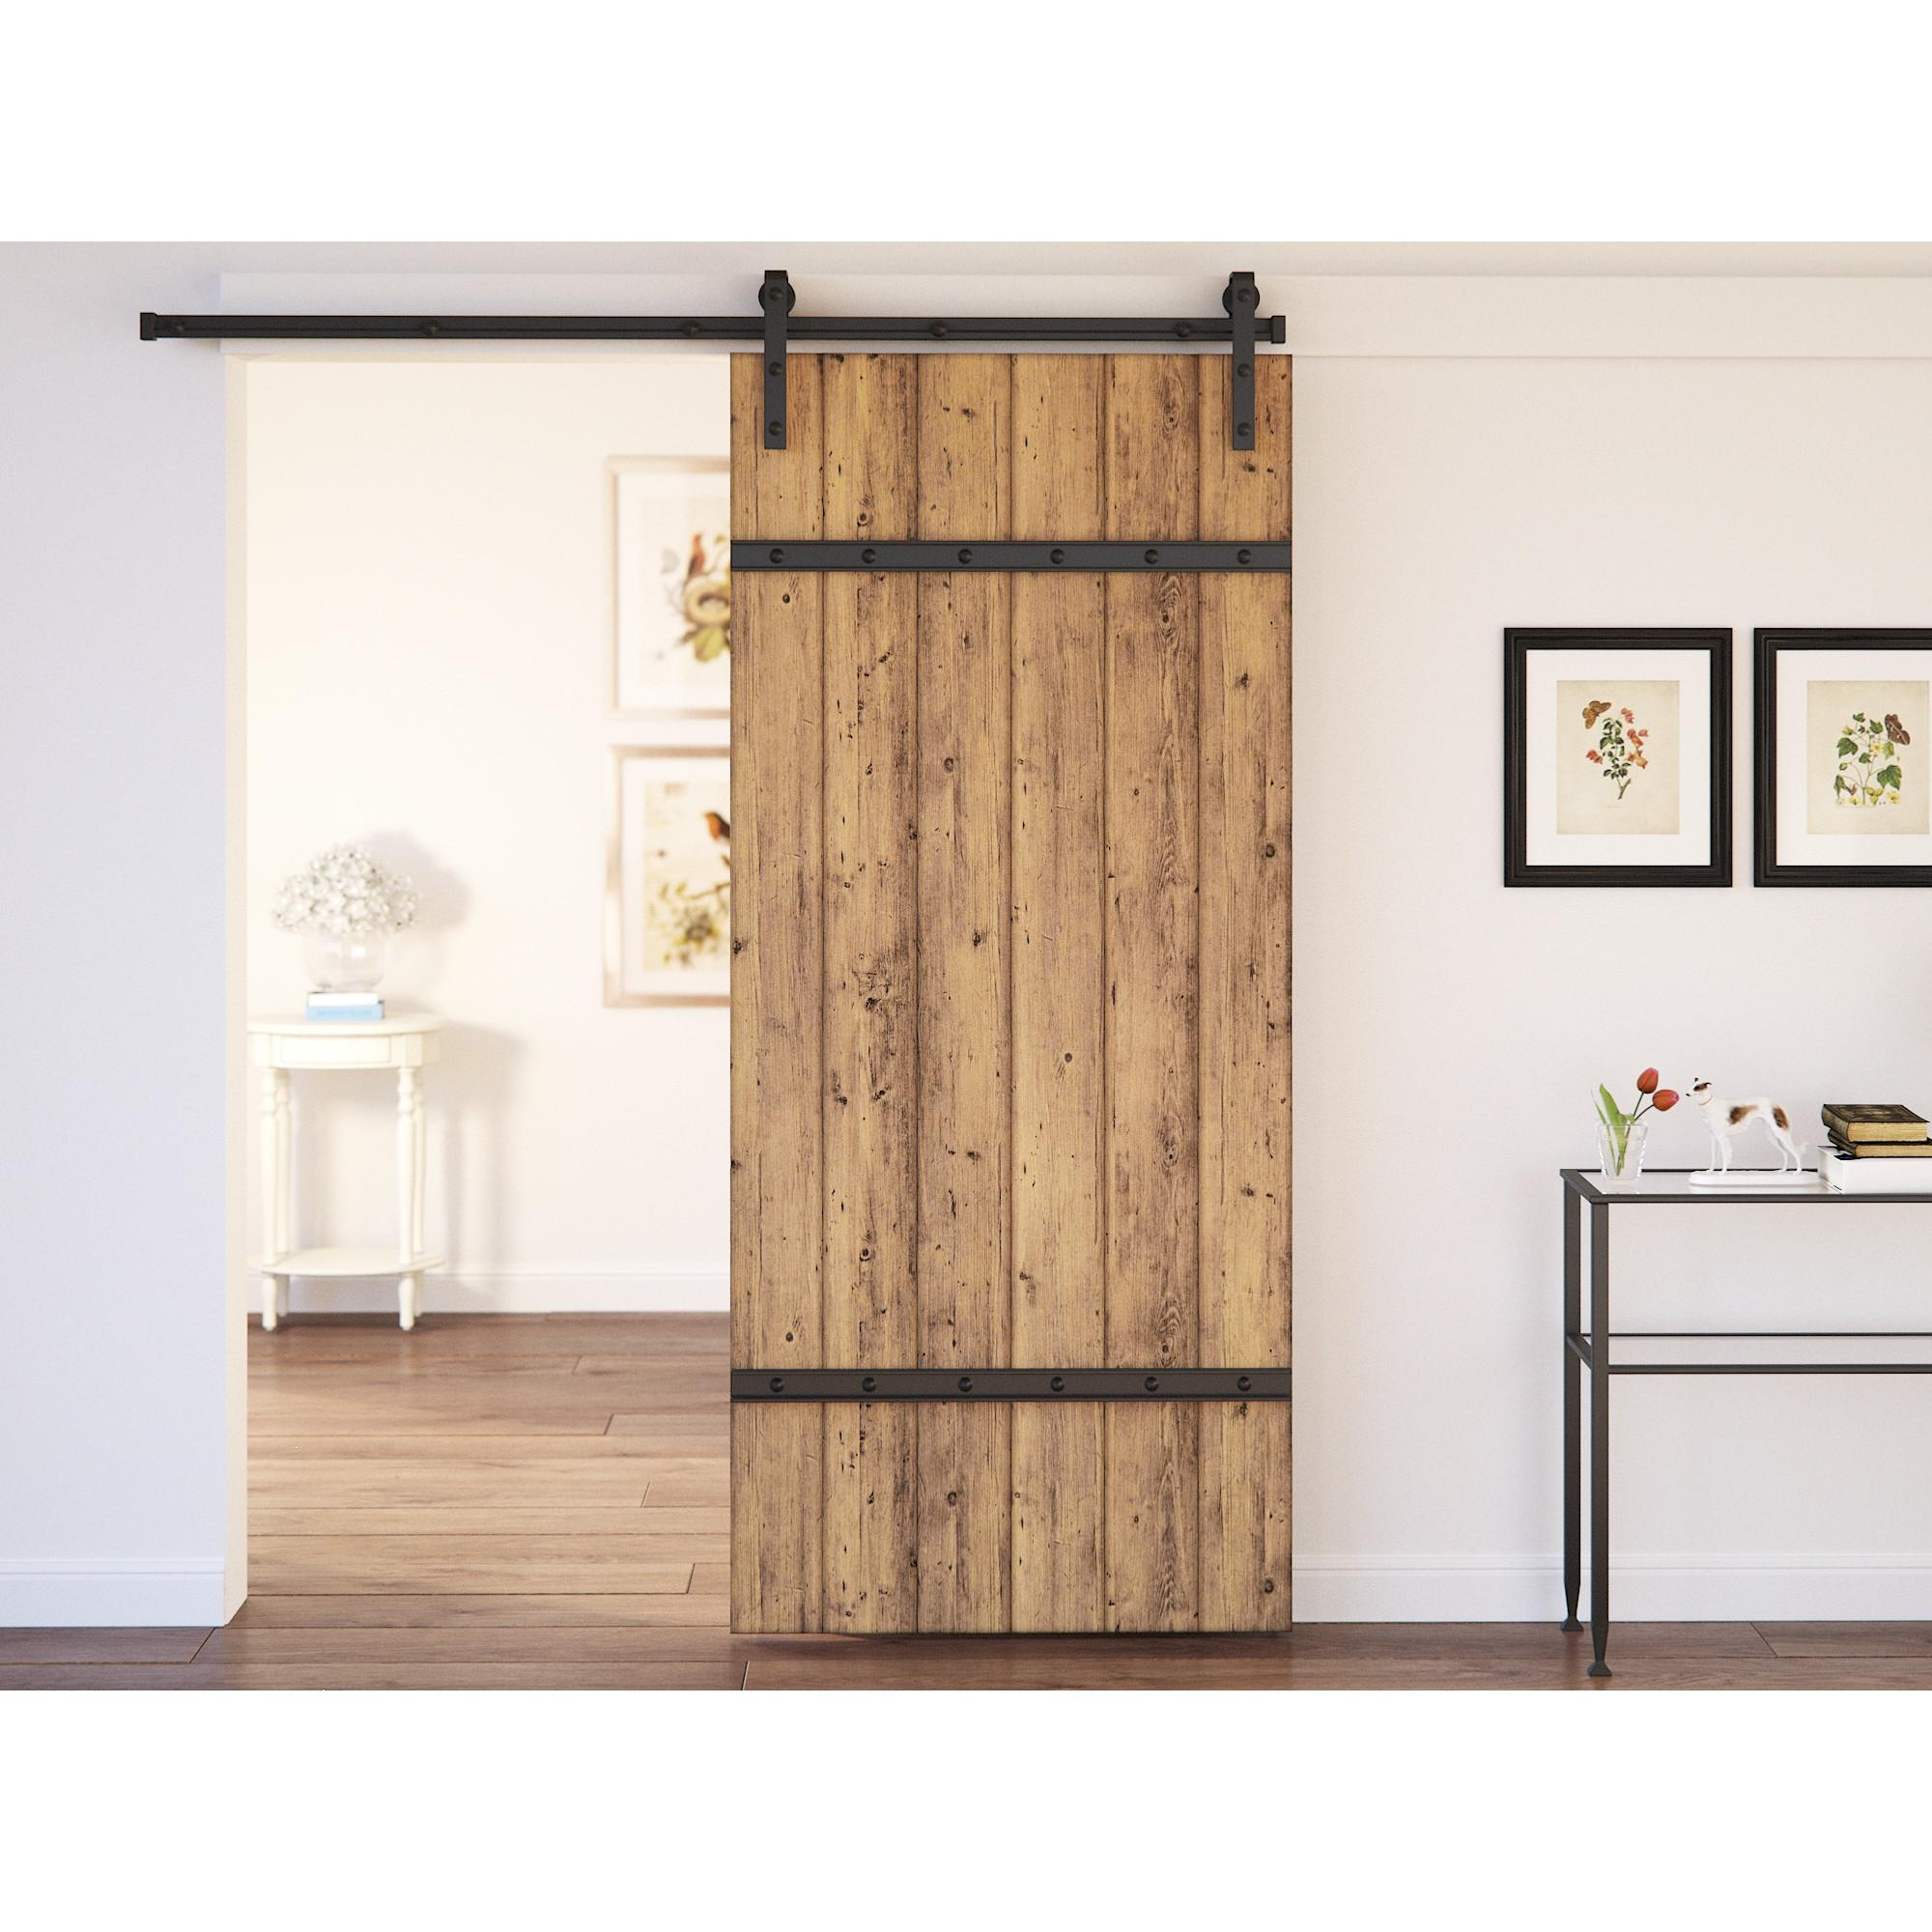 August Grove Caddie Panel Interior Barn Door